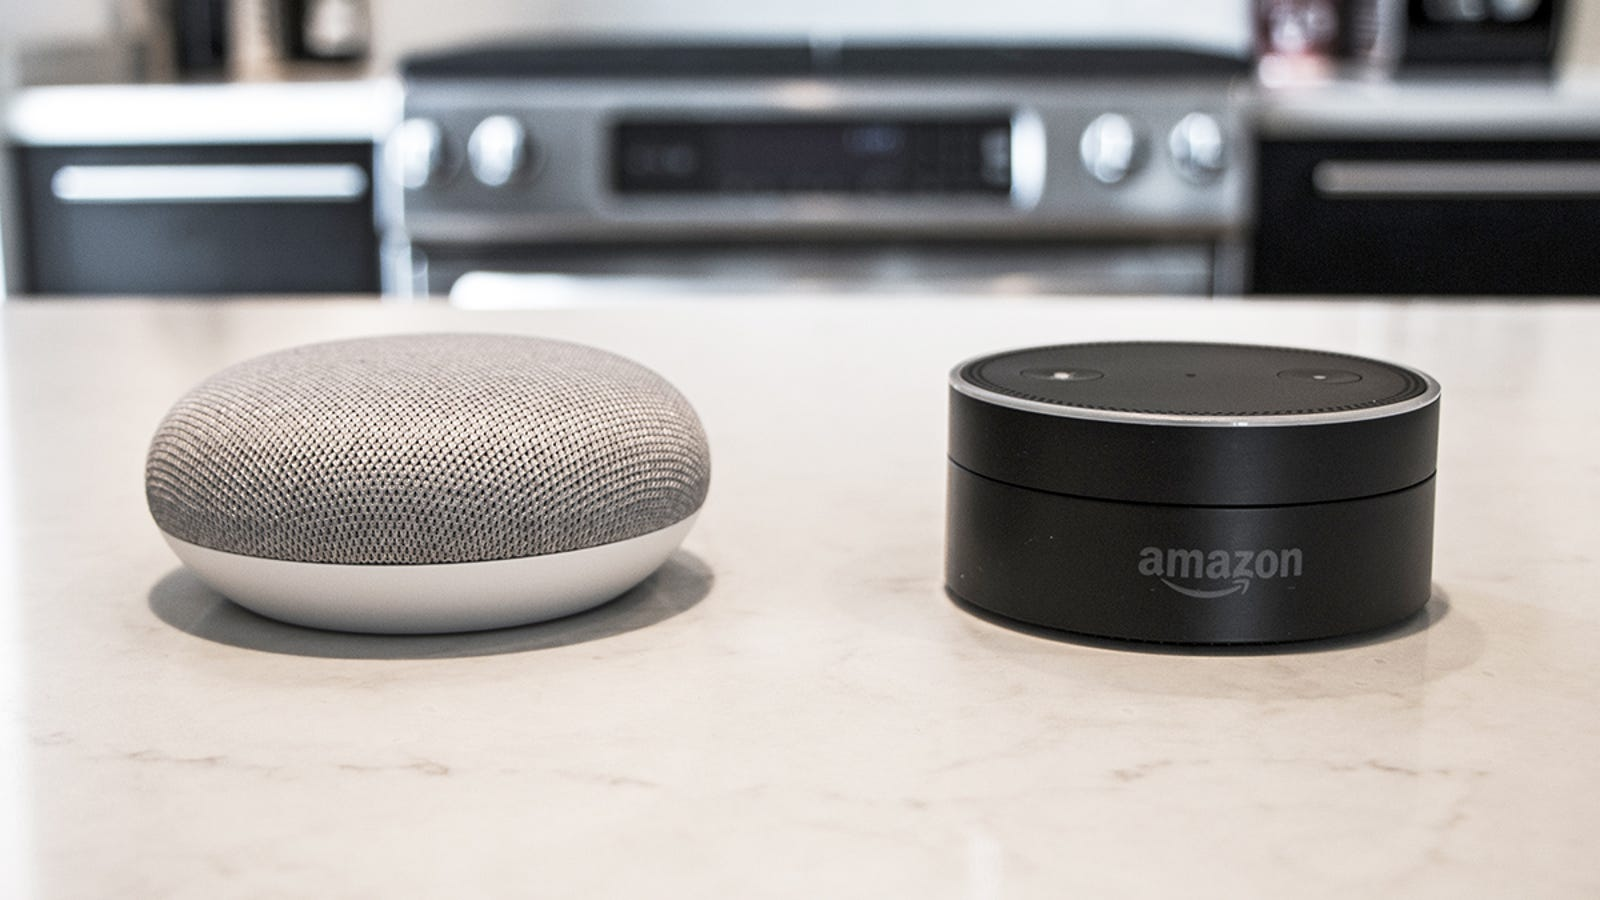 How to Use Google Home or Amazon Echo to Control What's on